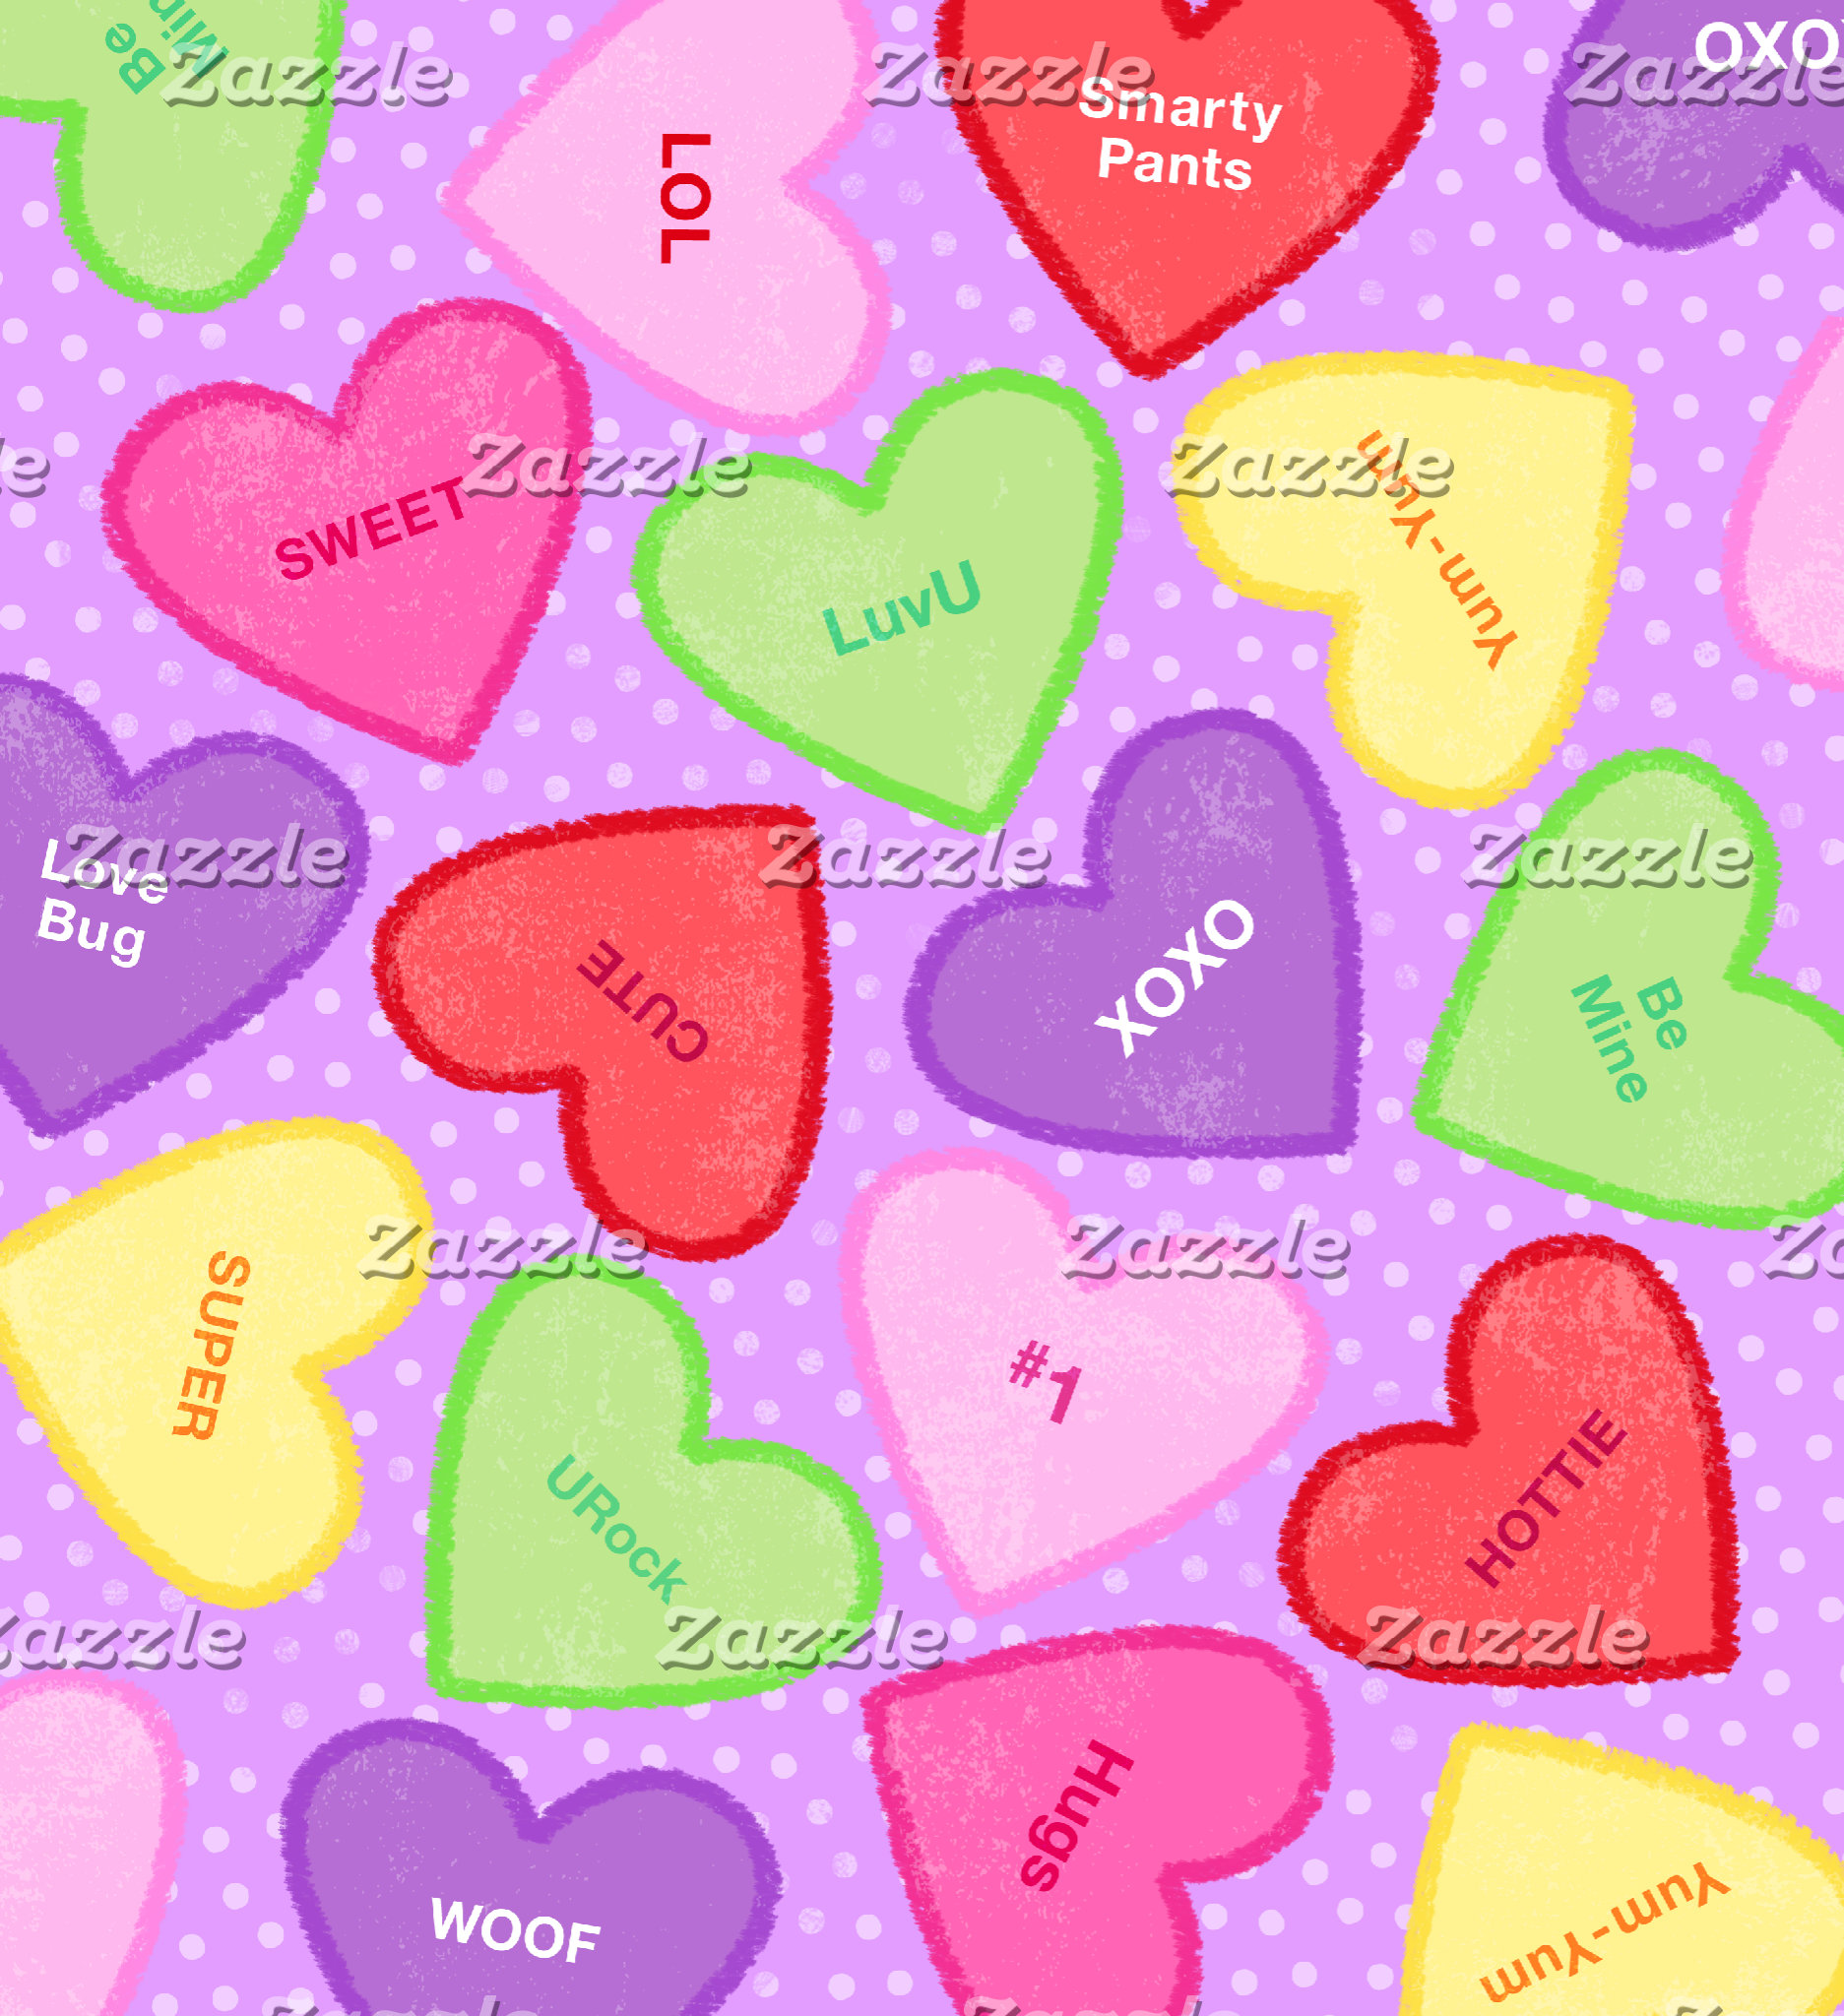 Colorful Conversation Hearts with Purple Dots